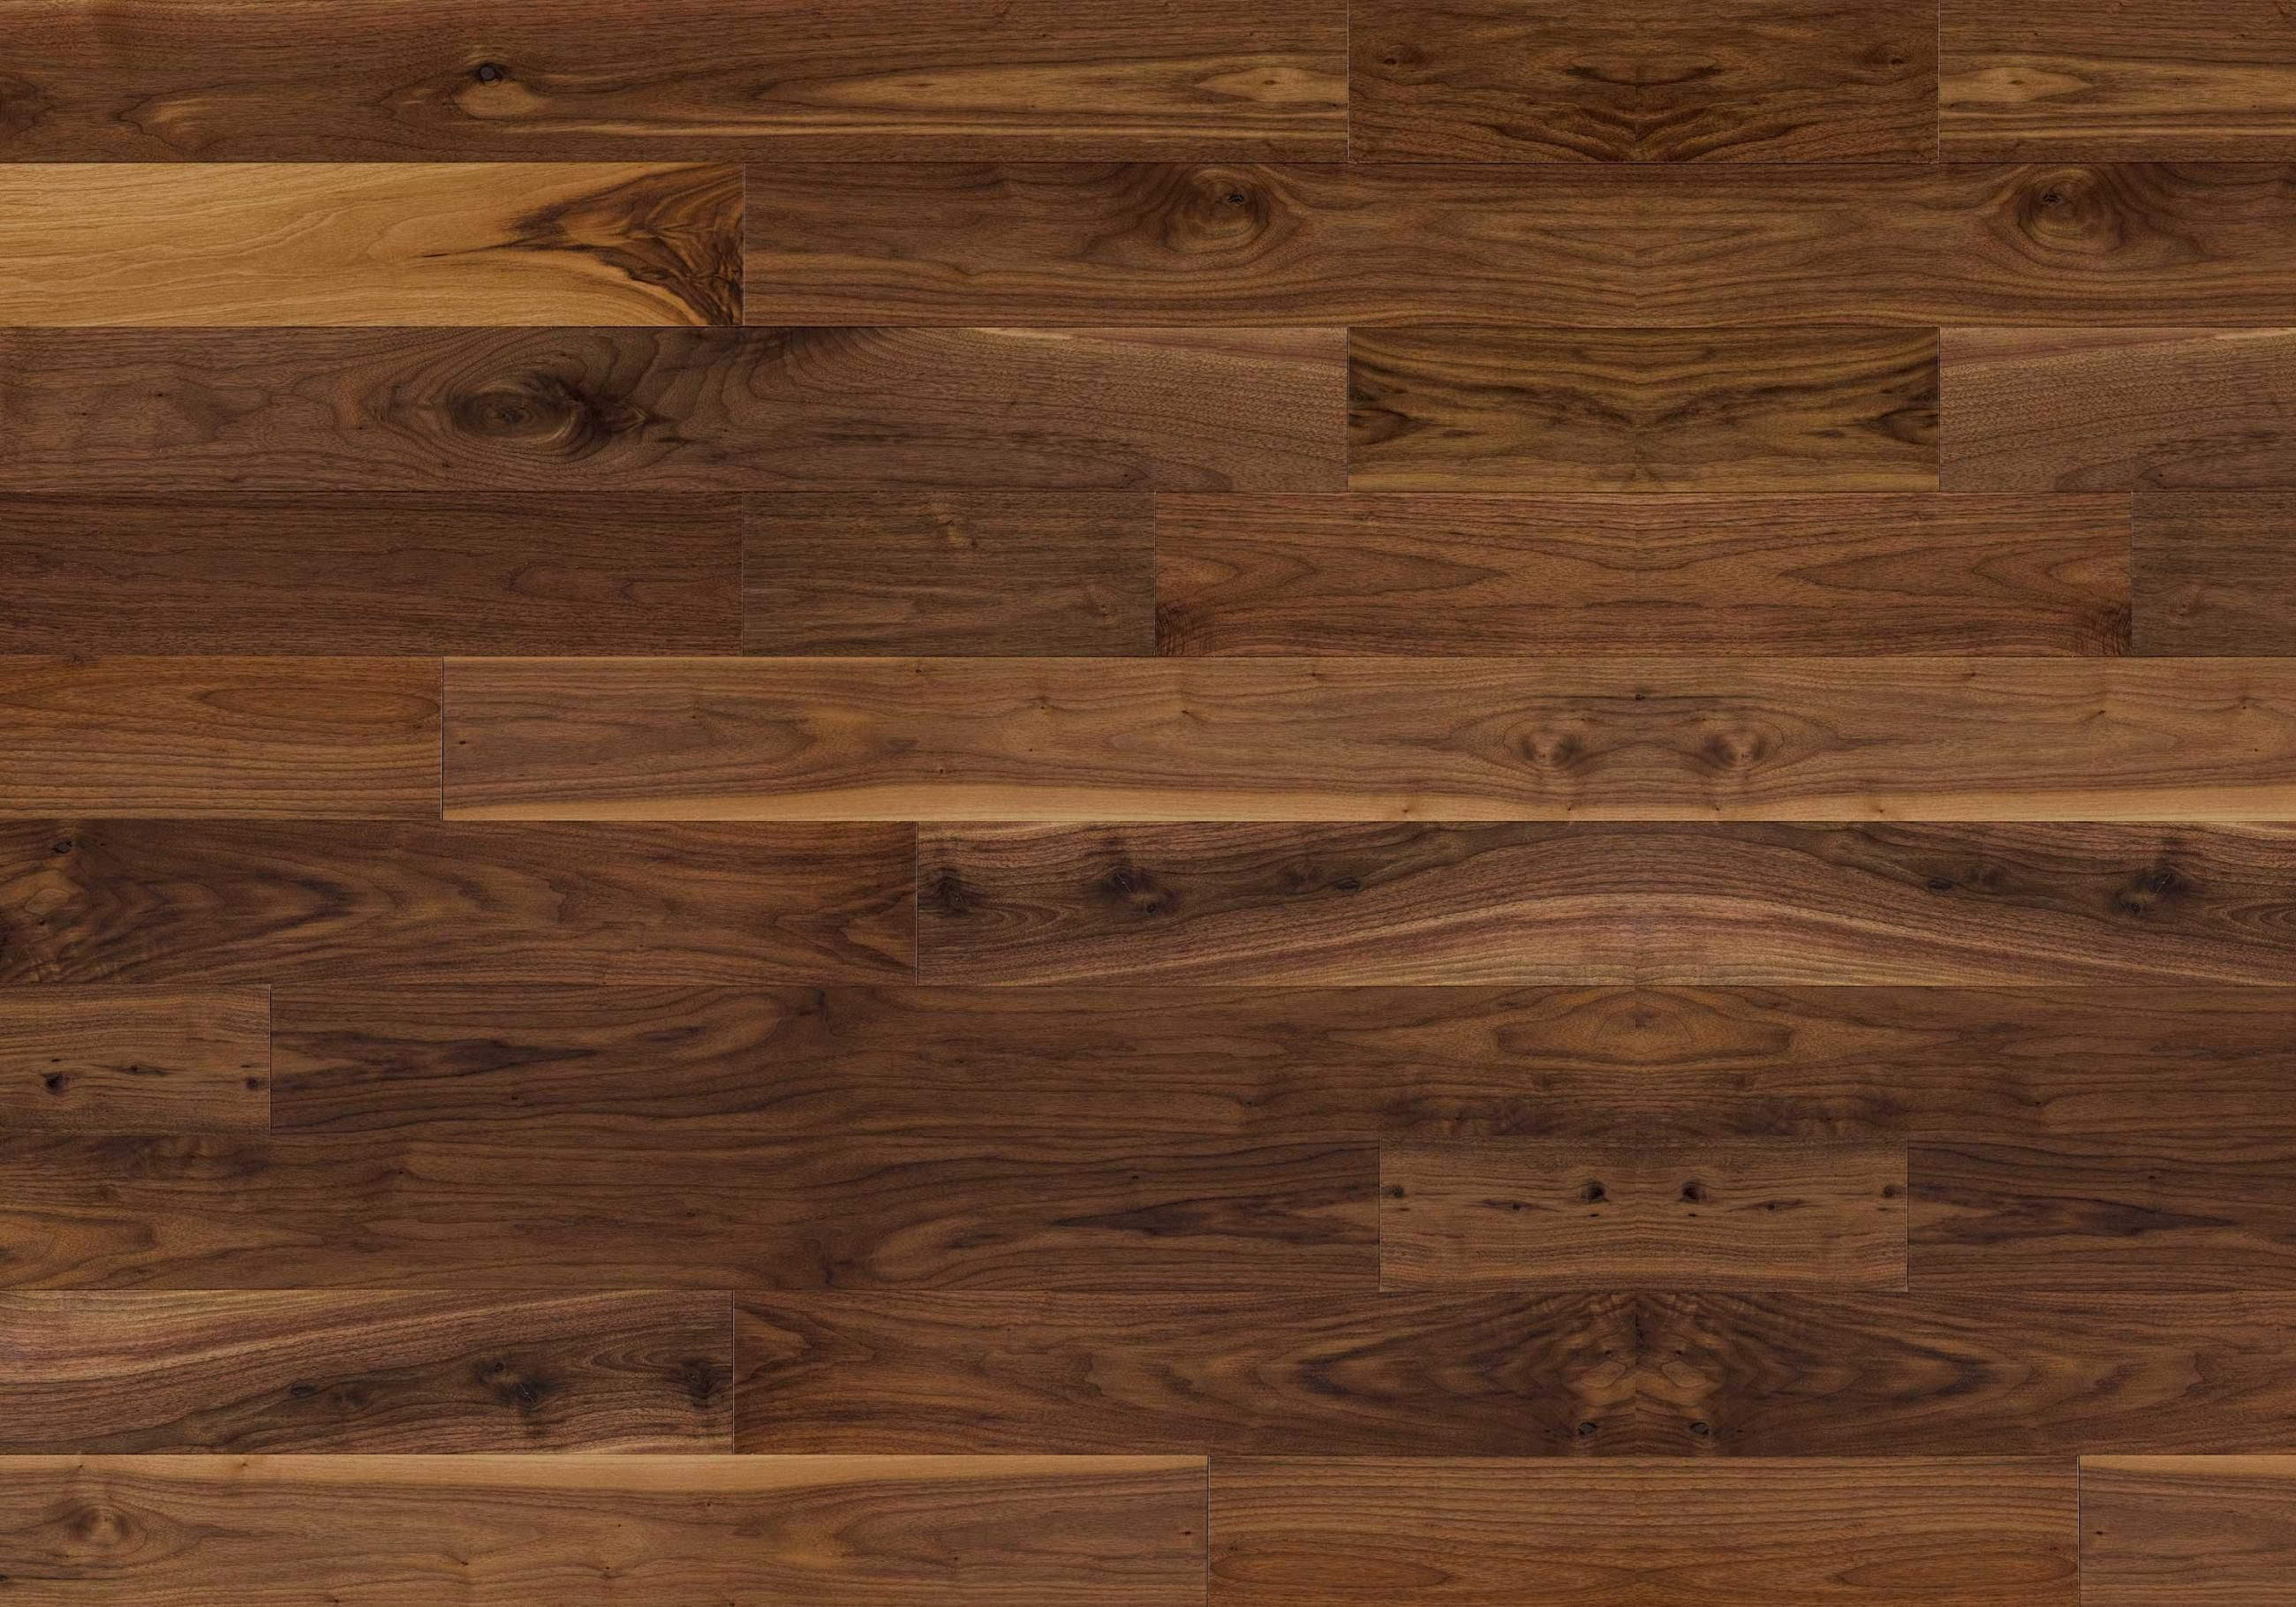 Natural Ambiance Black Walnut Exclusive Lauzon Hardwood Flooring Walnut Wood Floors Wood Floor Texture Wood Texture